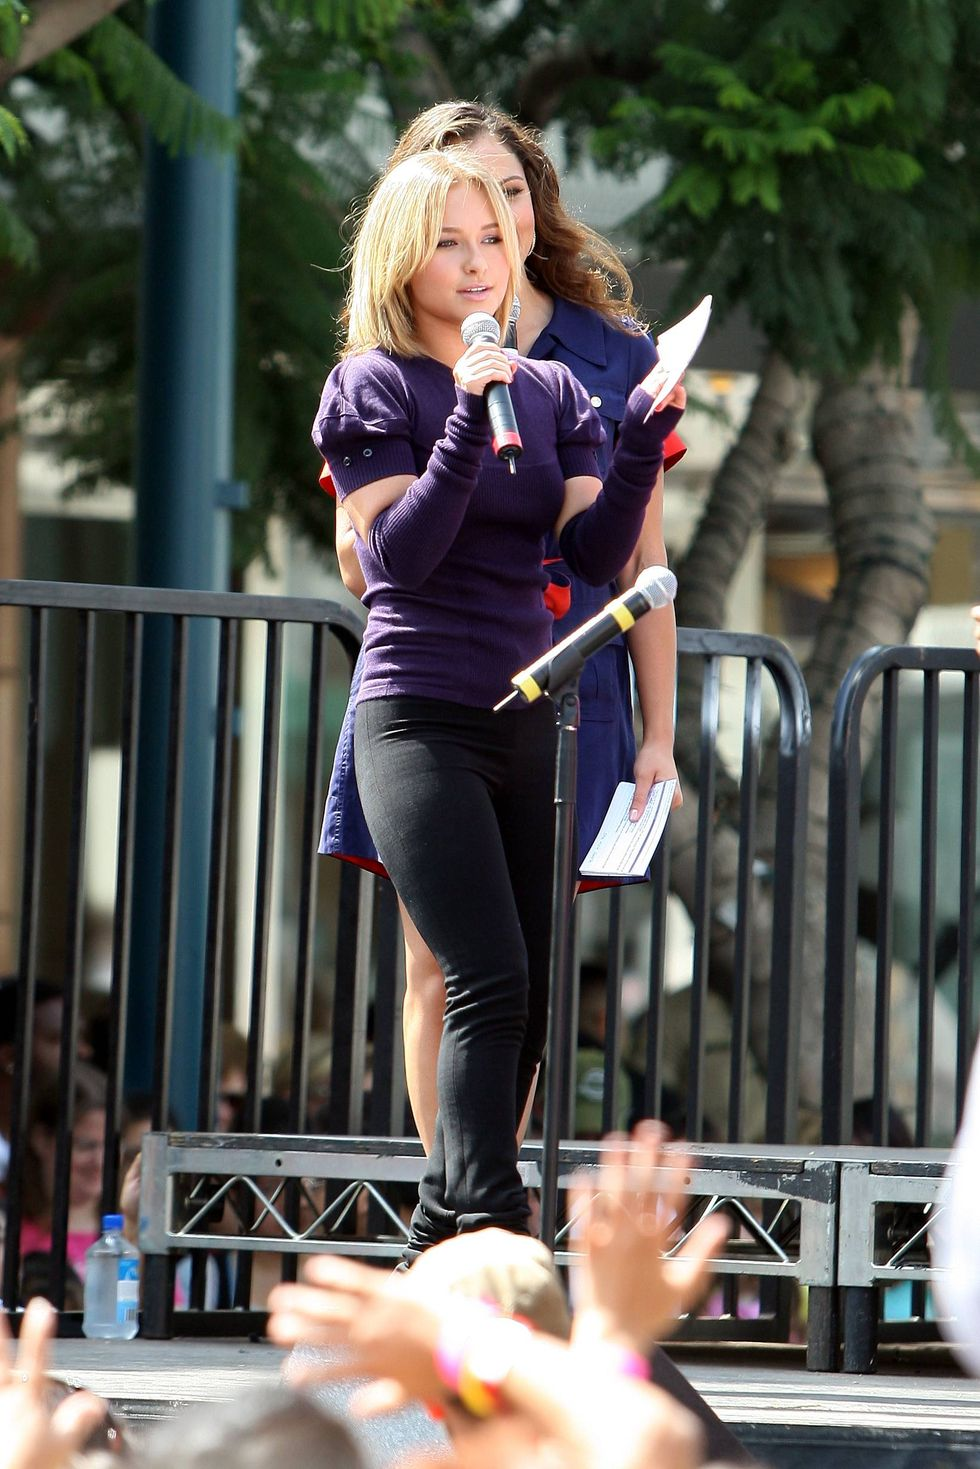 hayden-panettiere-neutrogena-fresh-faces-concert-in-santa-monica-01